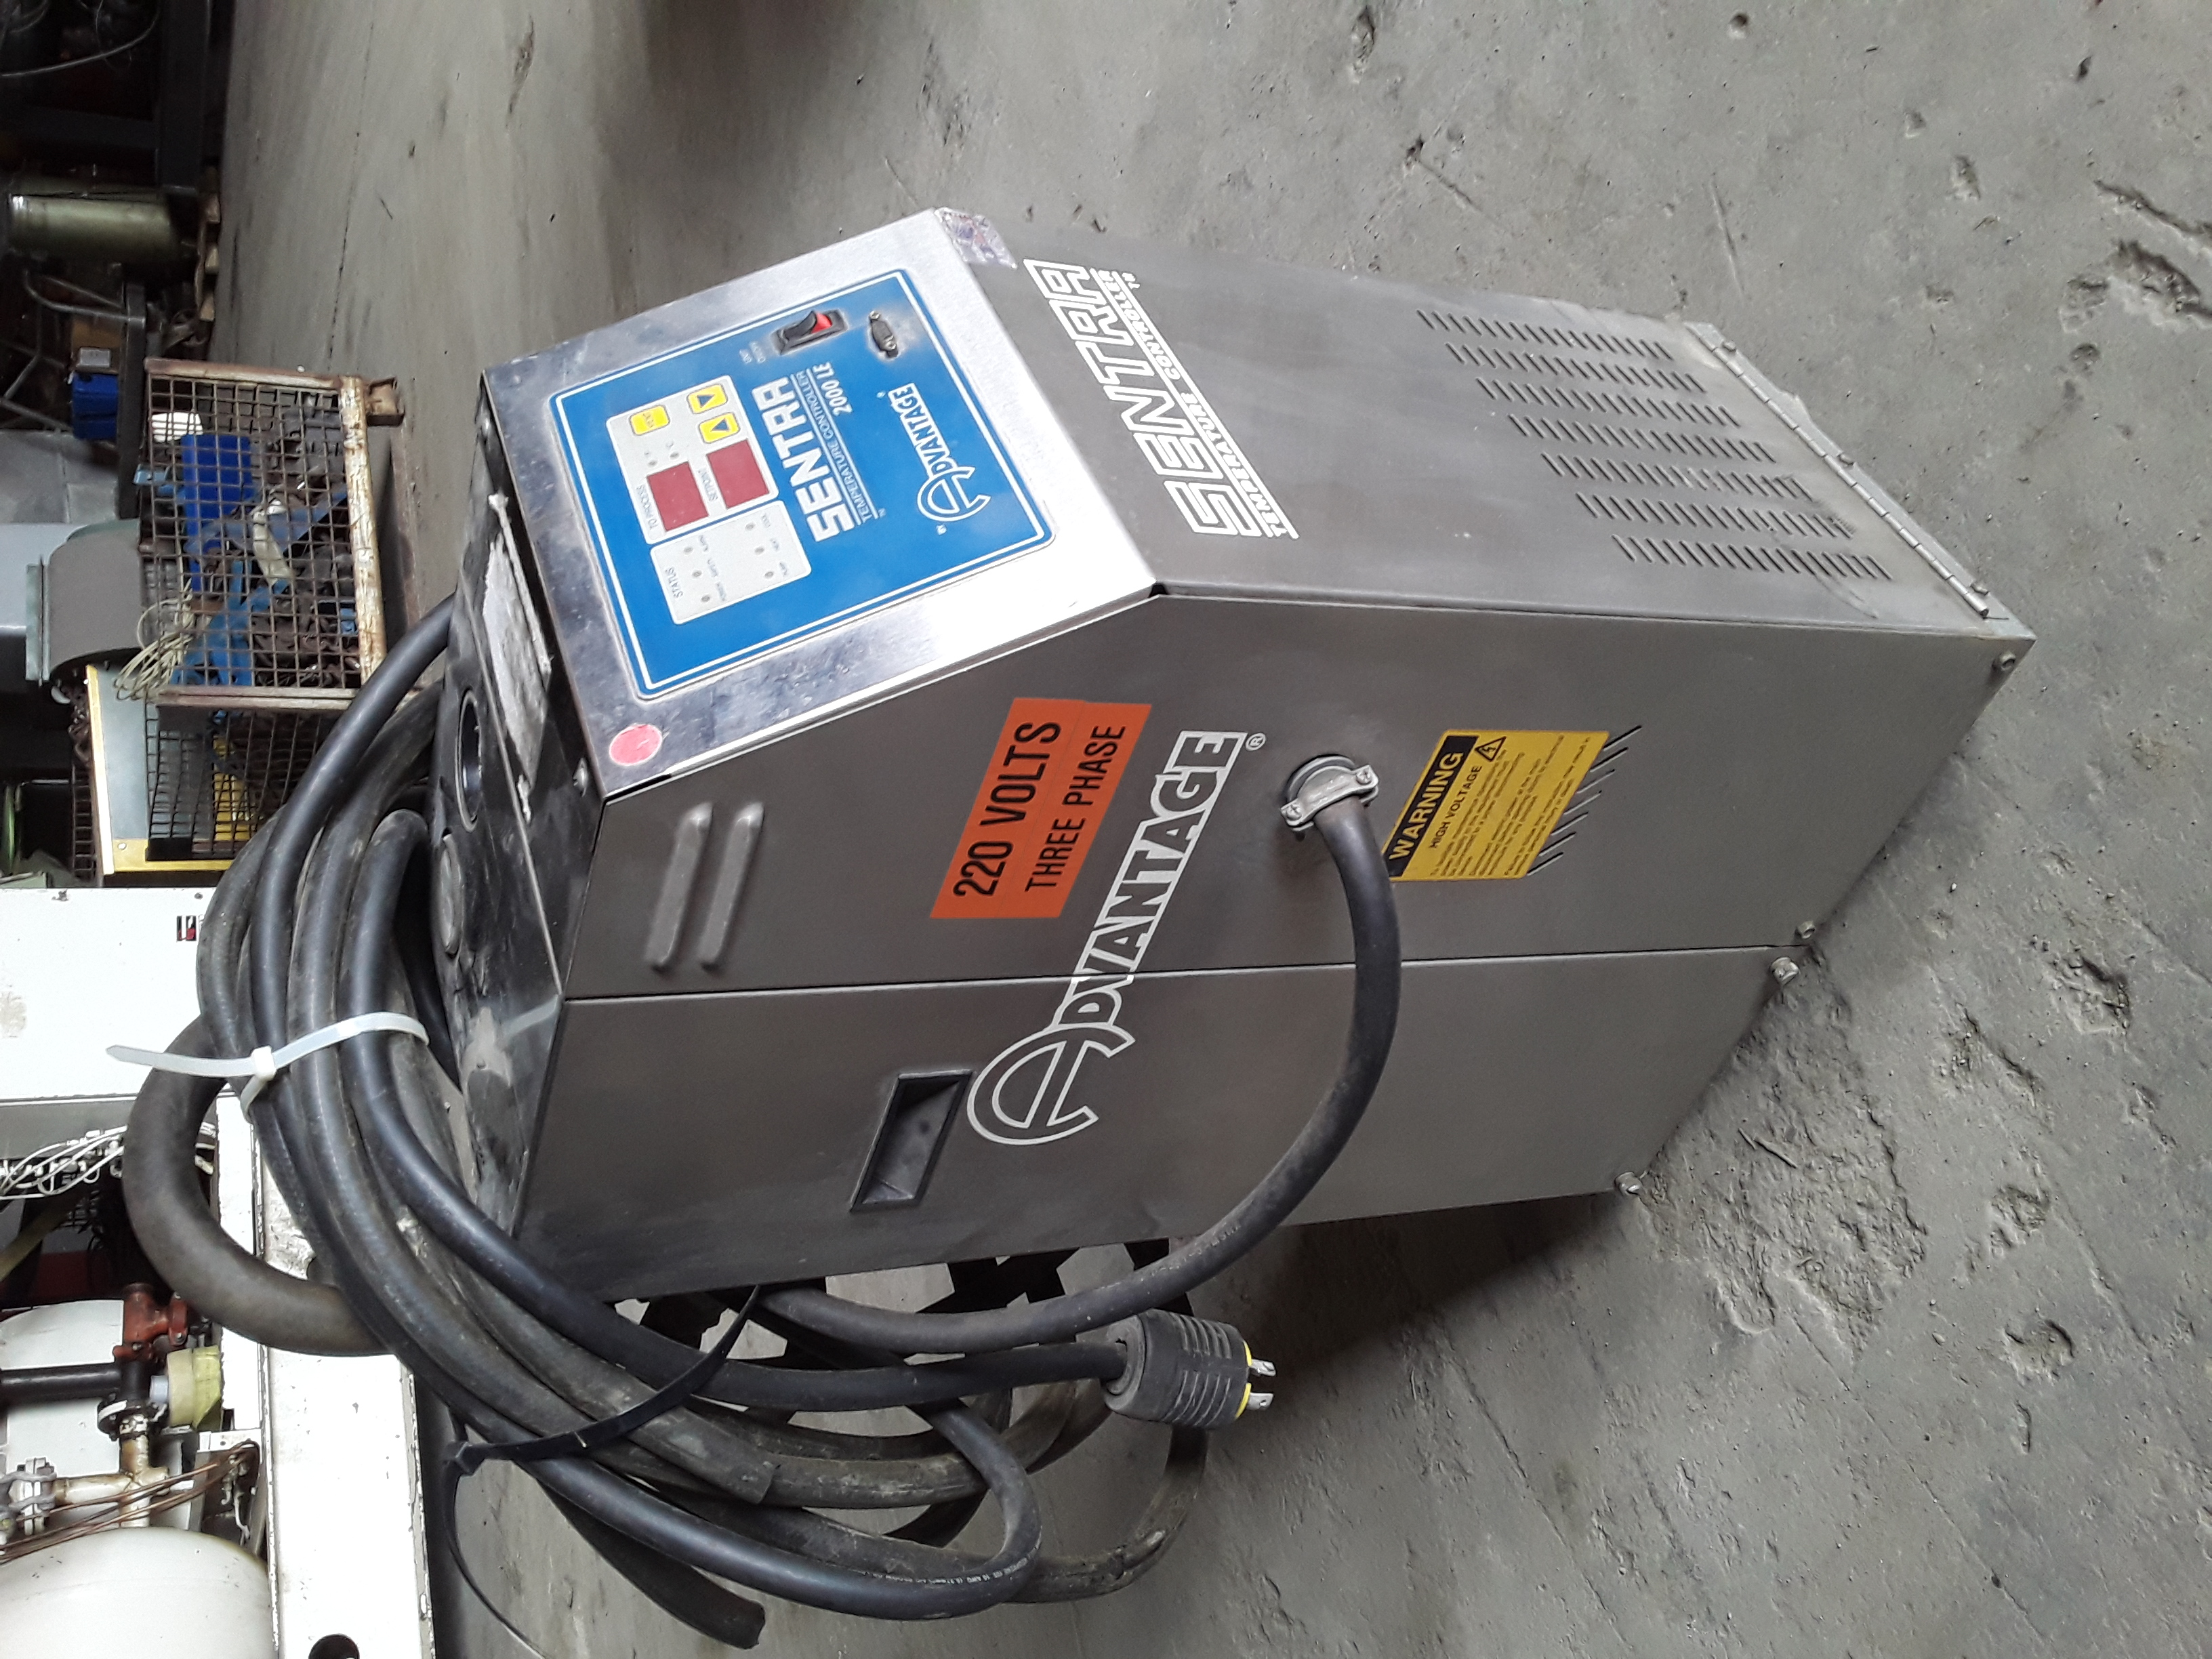 (1) PREOWNED ADVANTAGE/SENTRA WATER TEMPERATURE CONTROLLER, <br>MODEL SK-1035LE-21C1, S/N 76680